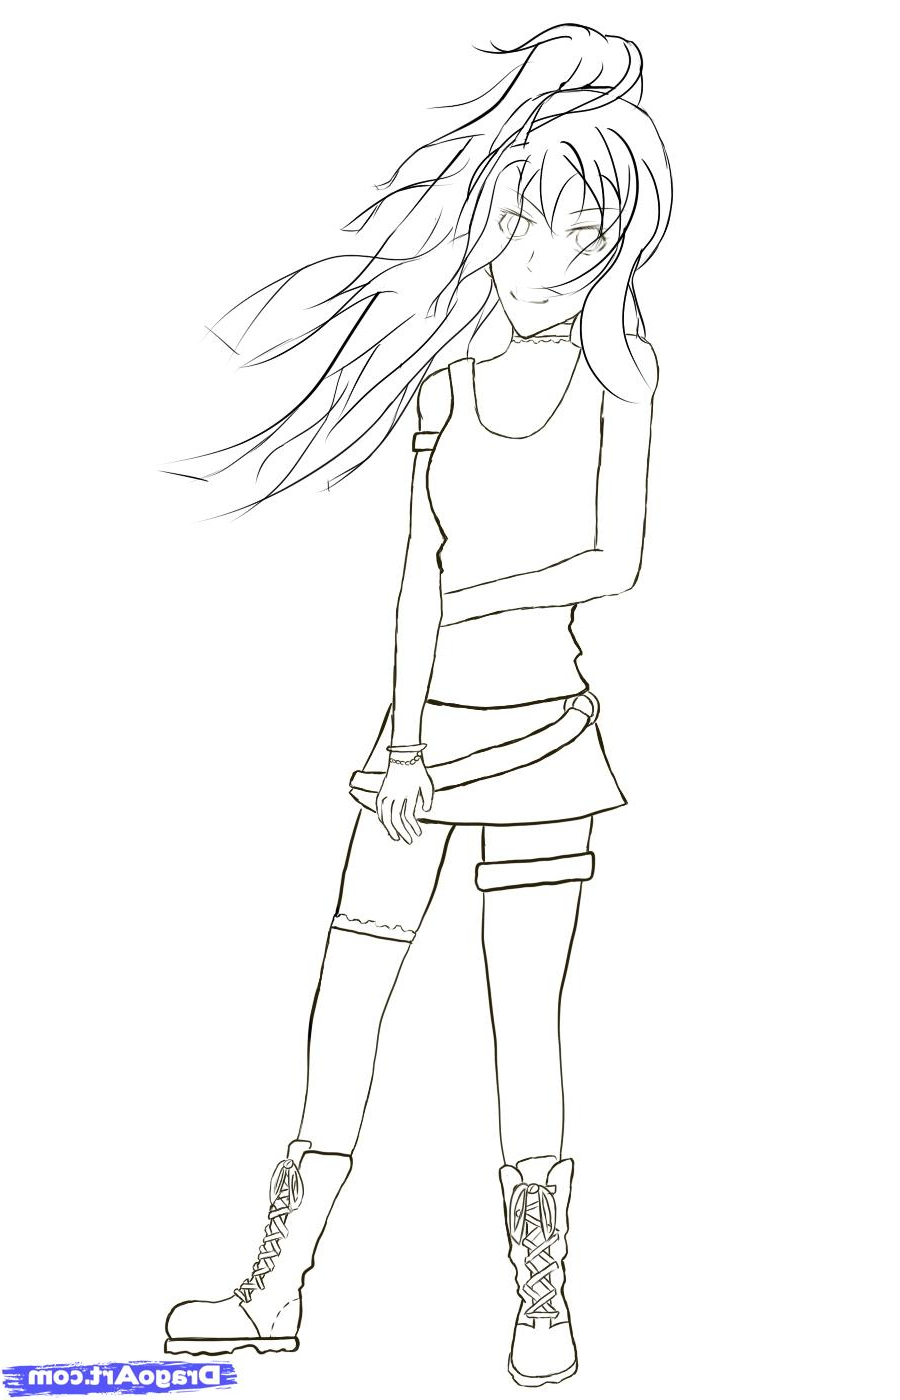 900x1400 Pencil Sketch Full Body Anime Pic Easy Anime Pencil Drawing Girl